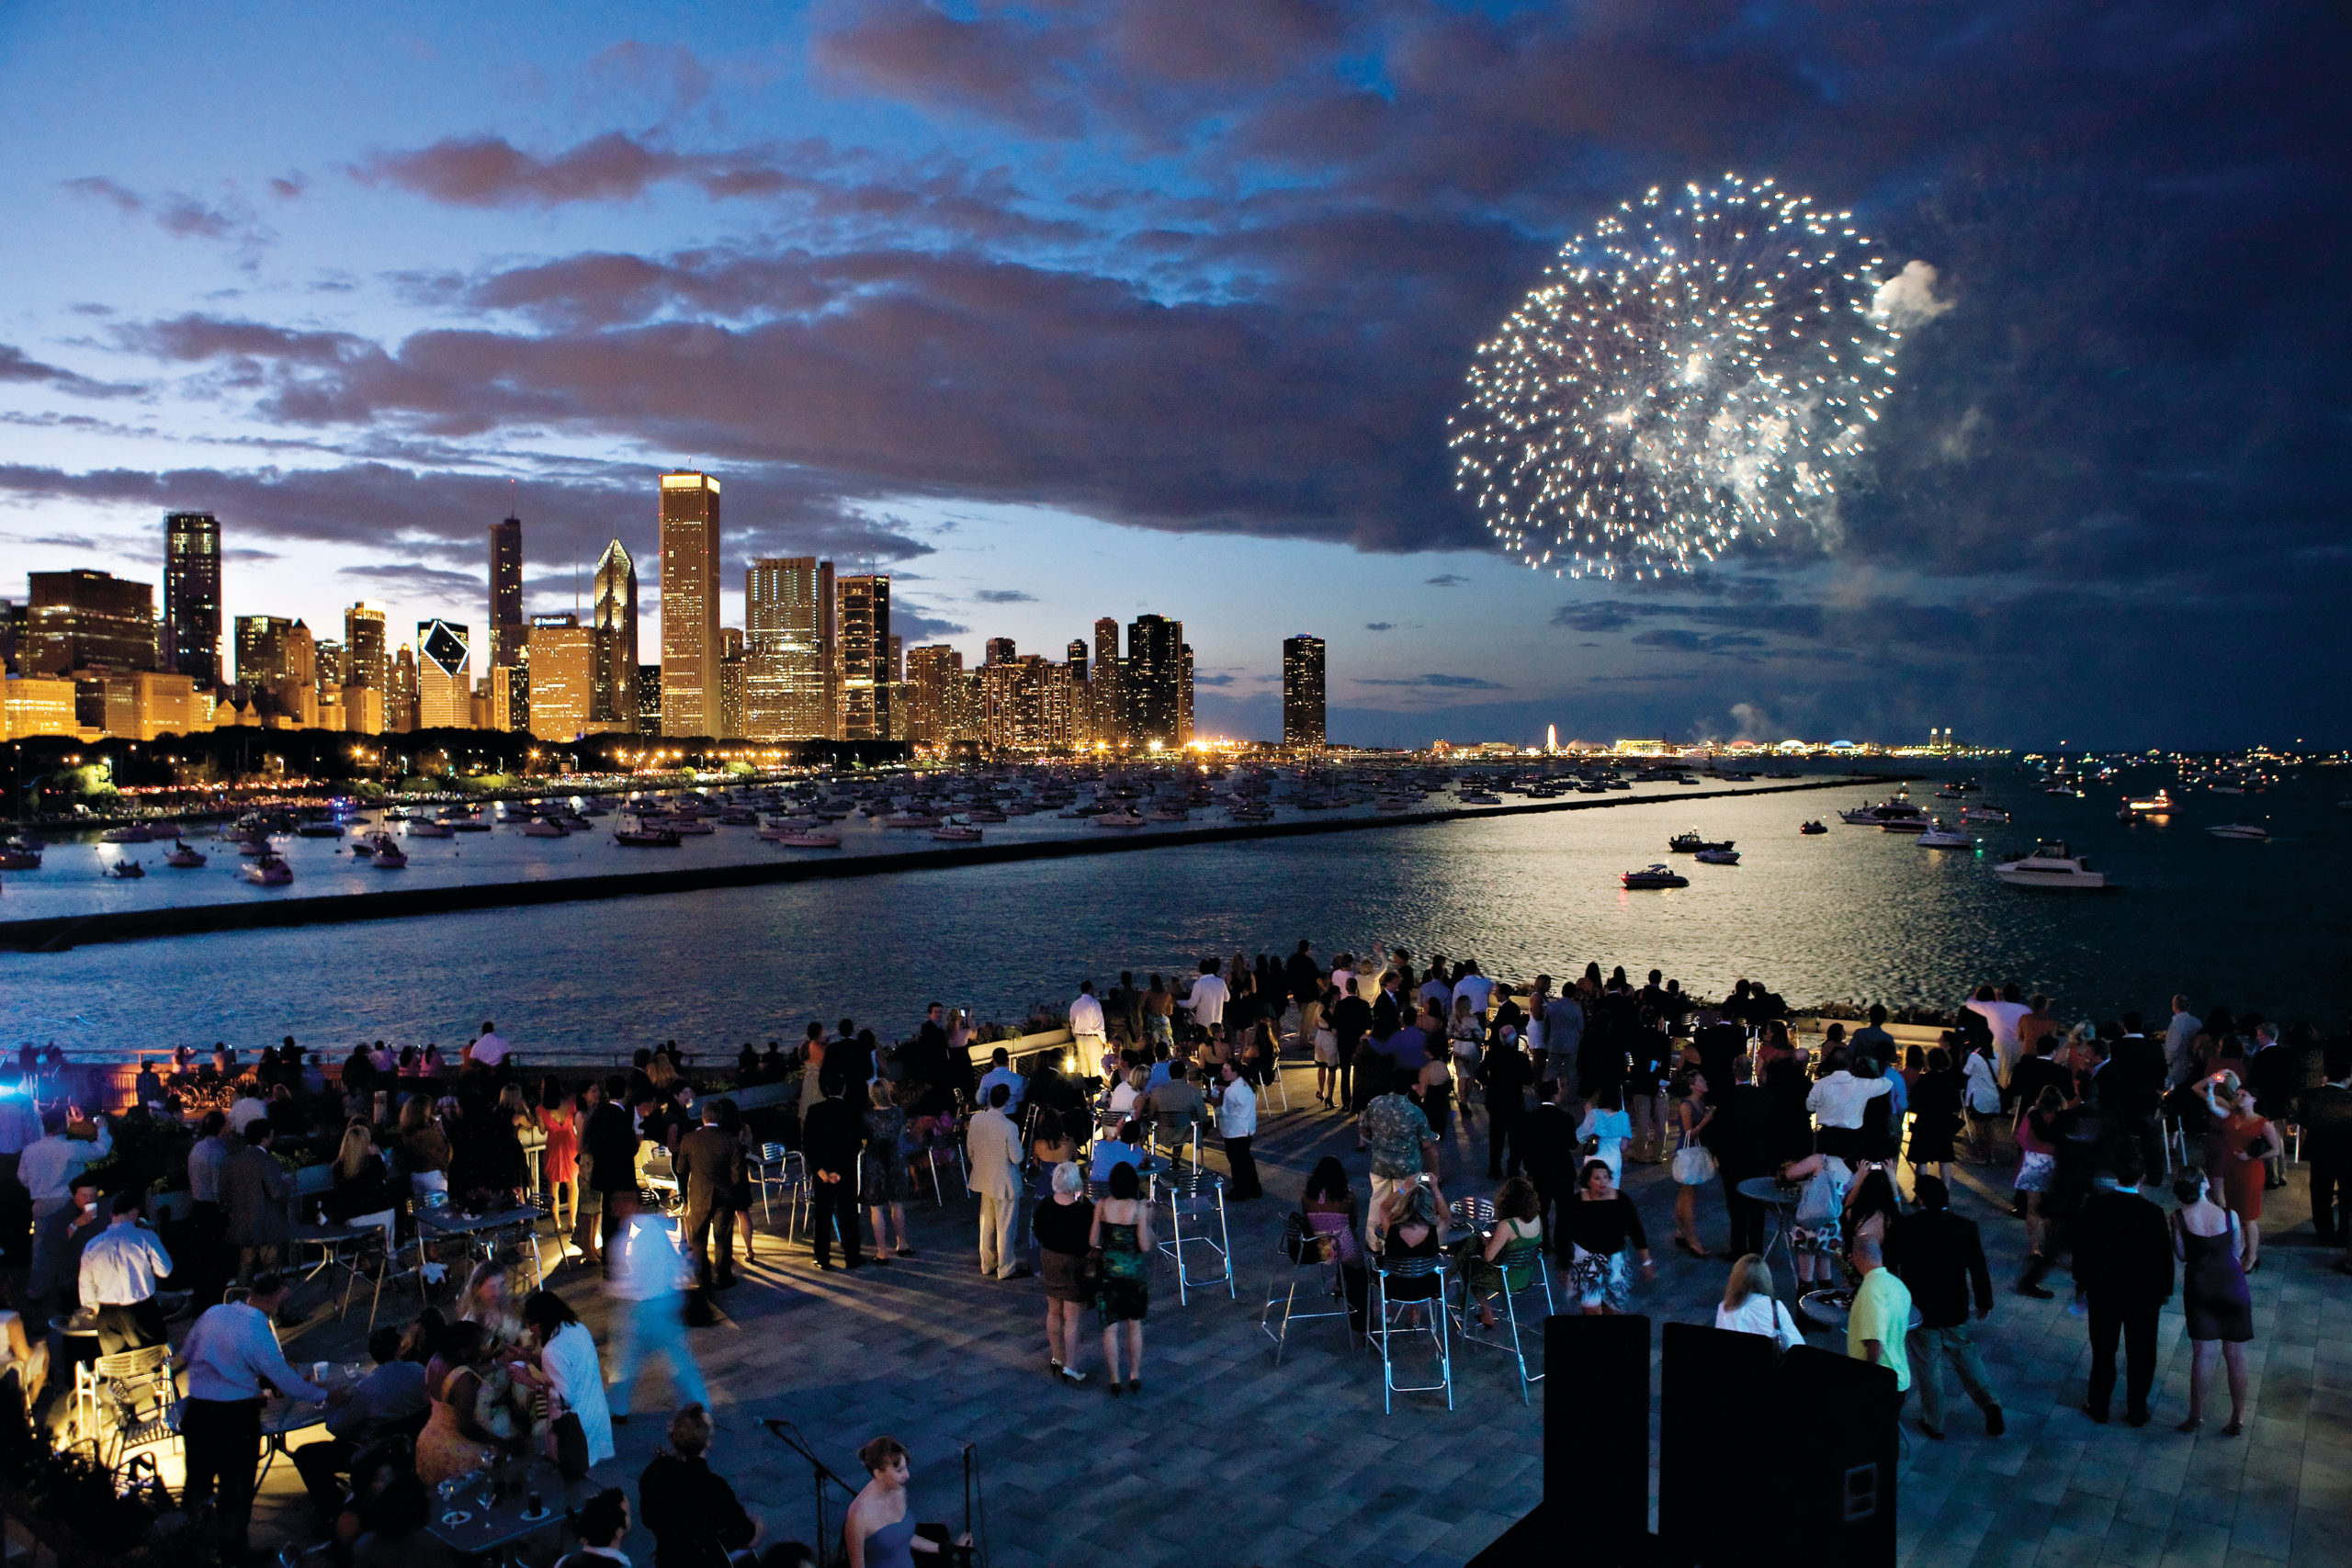 Outdoor event at Shedd Aquarium overlooking Chicago